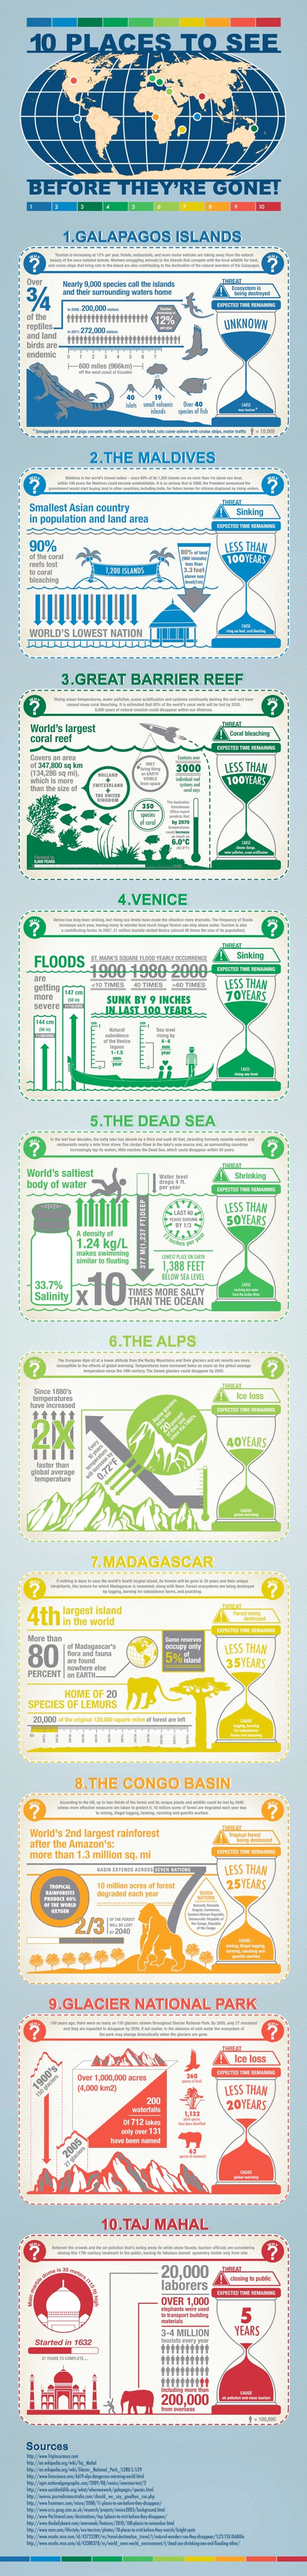 10 places travel infographic 1 Infographic: 10 Places To See Before Theyre Gone